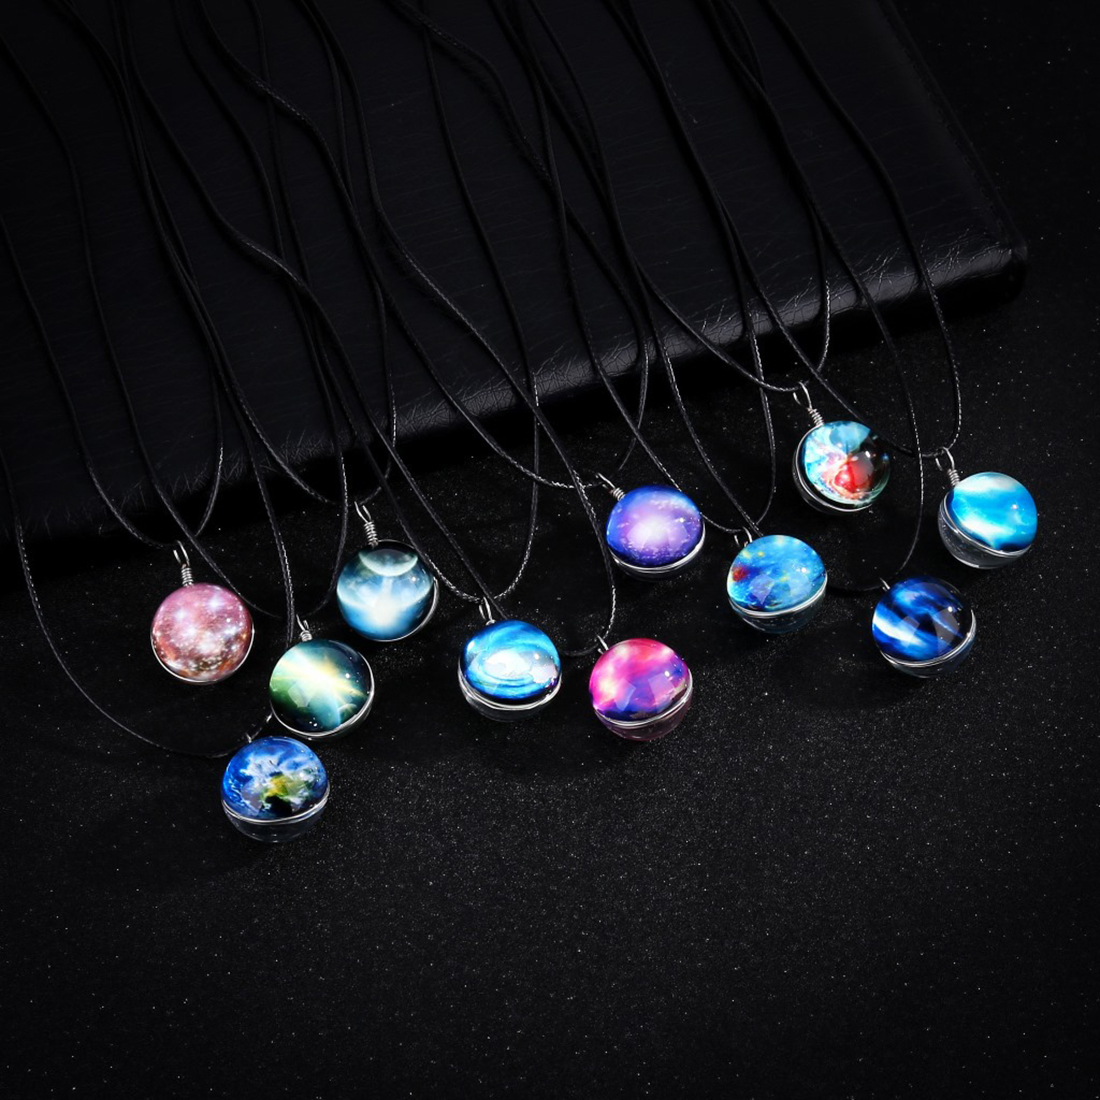 Time Gem Jewelry Necklace Glass Glowing Pendant Necklace Glow In The Dark Necklace Long Chain Luminous Necklace Starry Design